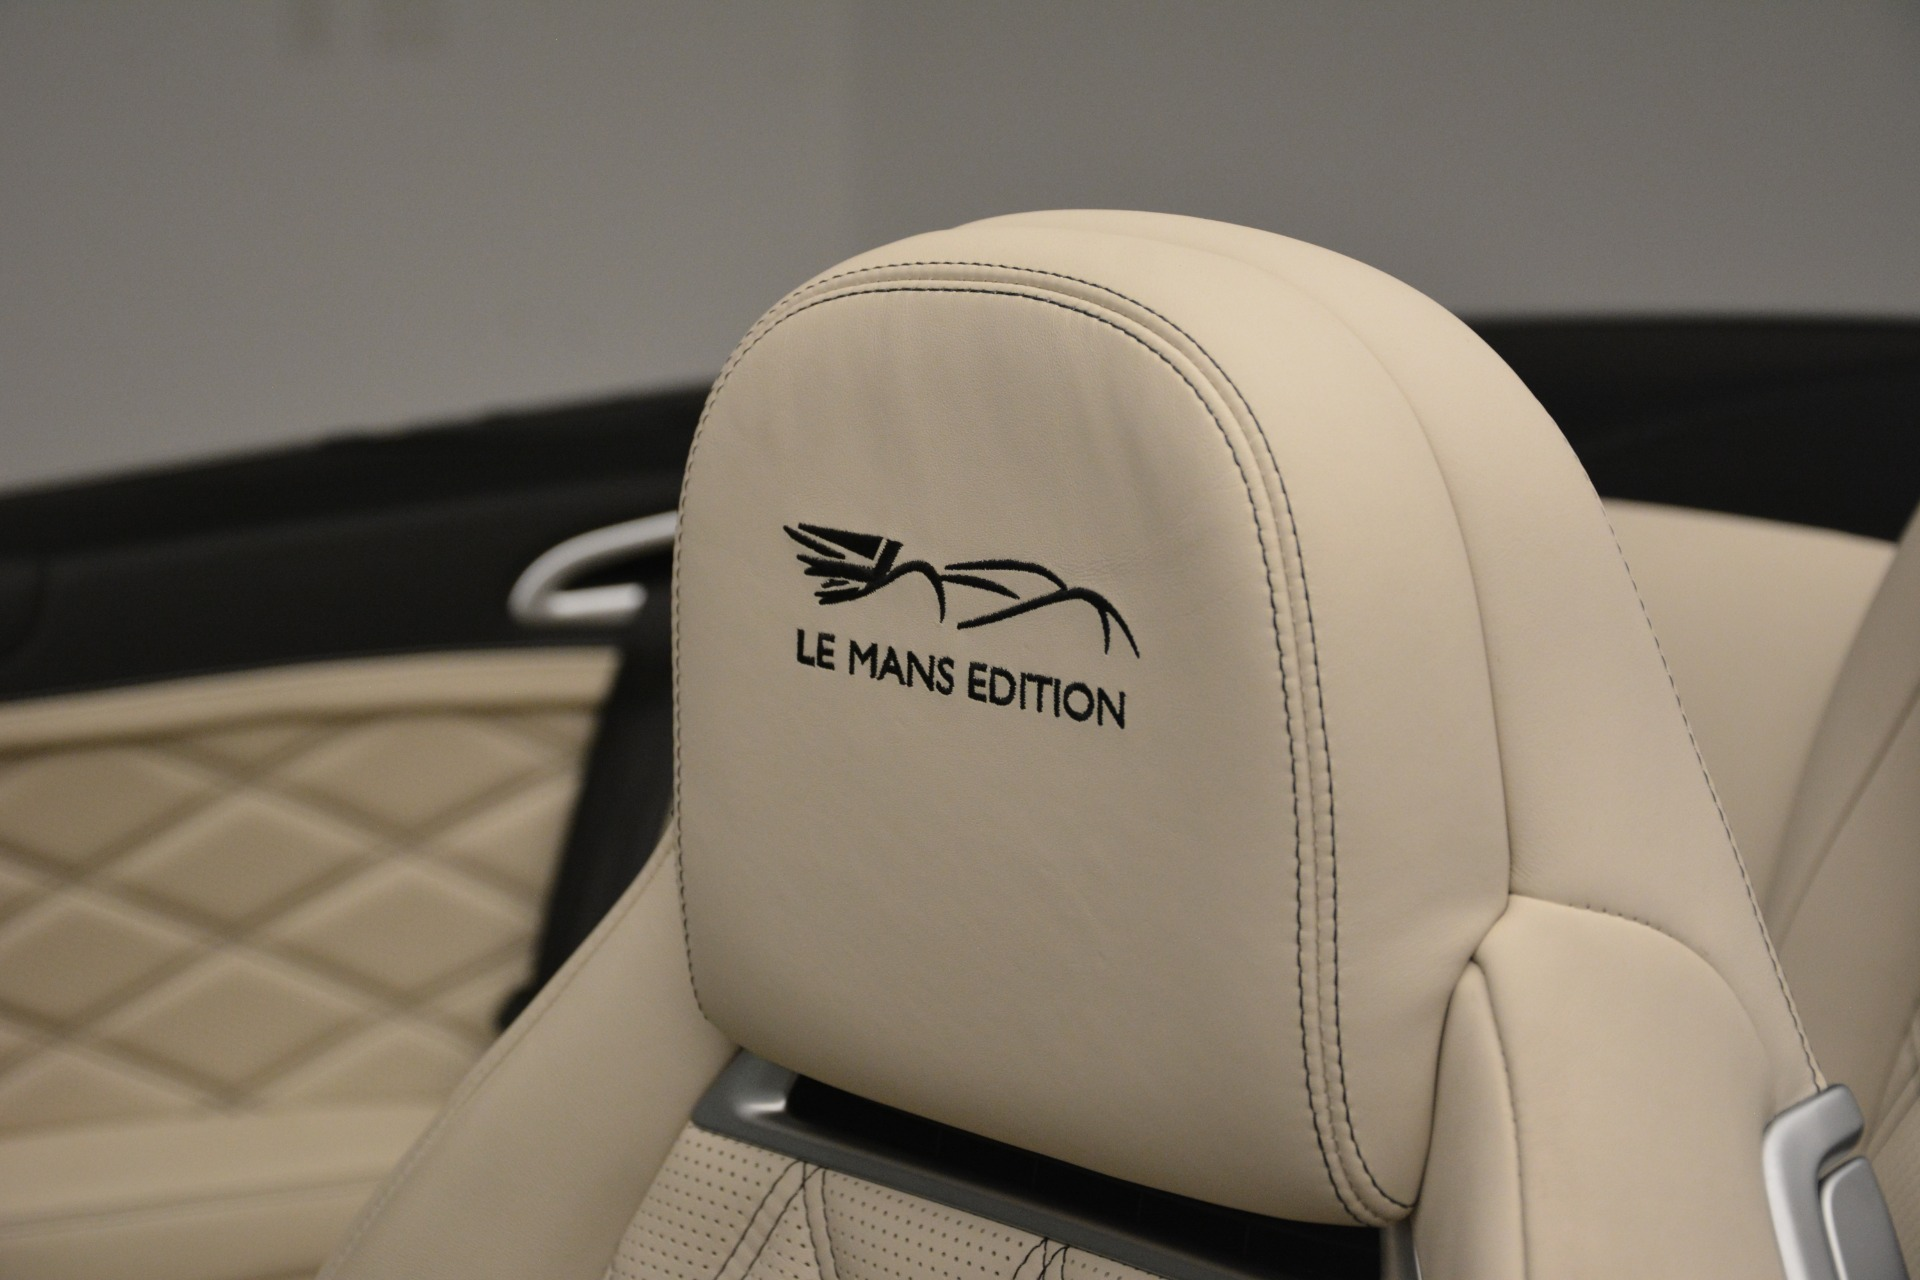 Used 2013 Bentley Continental GT W12 Le Mans Edition For Sale In Greenwich, CT 2519_p24